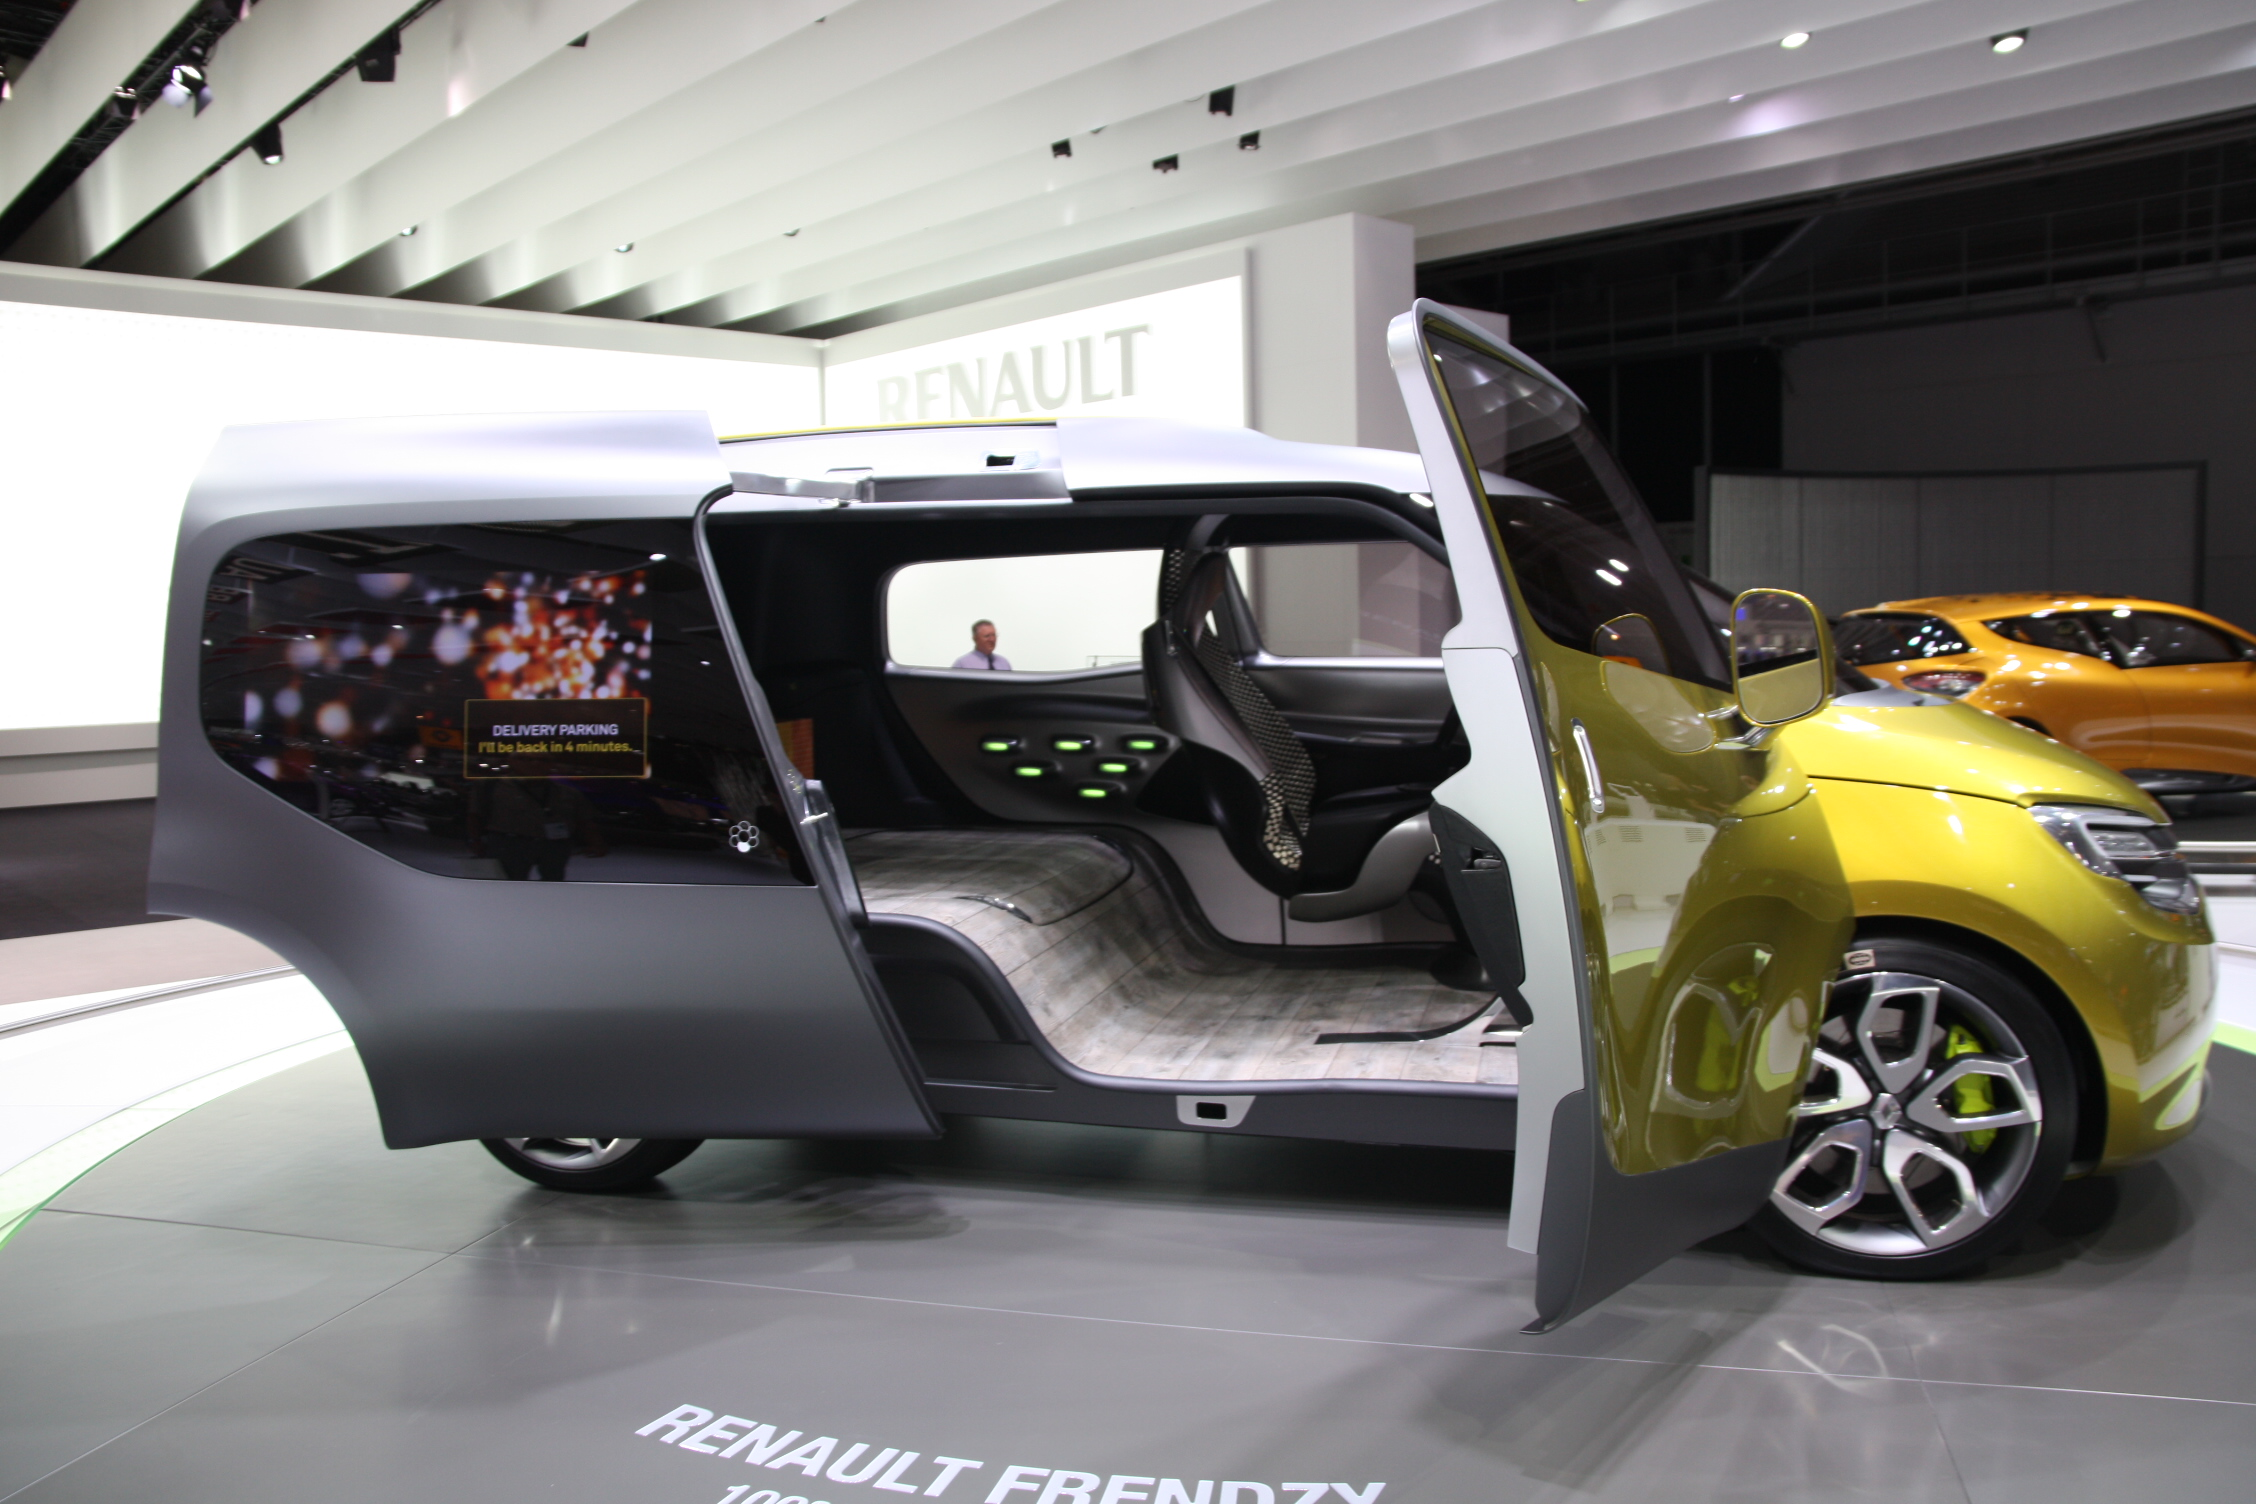 salon de francfort 2011 renault frendzy concept dark cars wallpapers. Black Bedroom Furniture Sets. Home Design Ideas